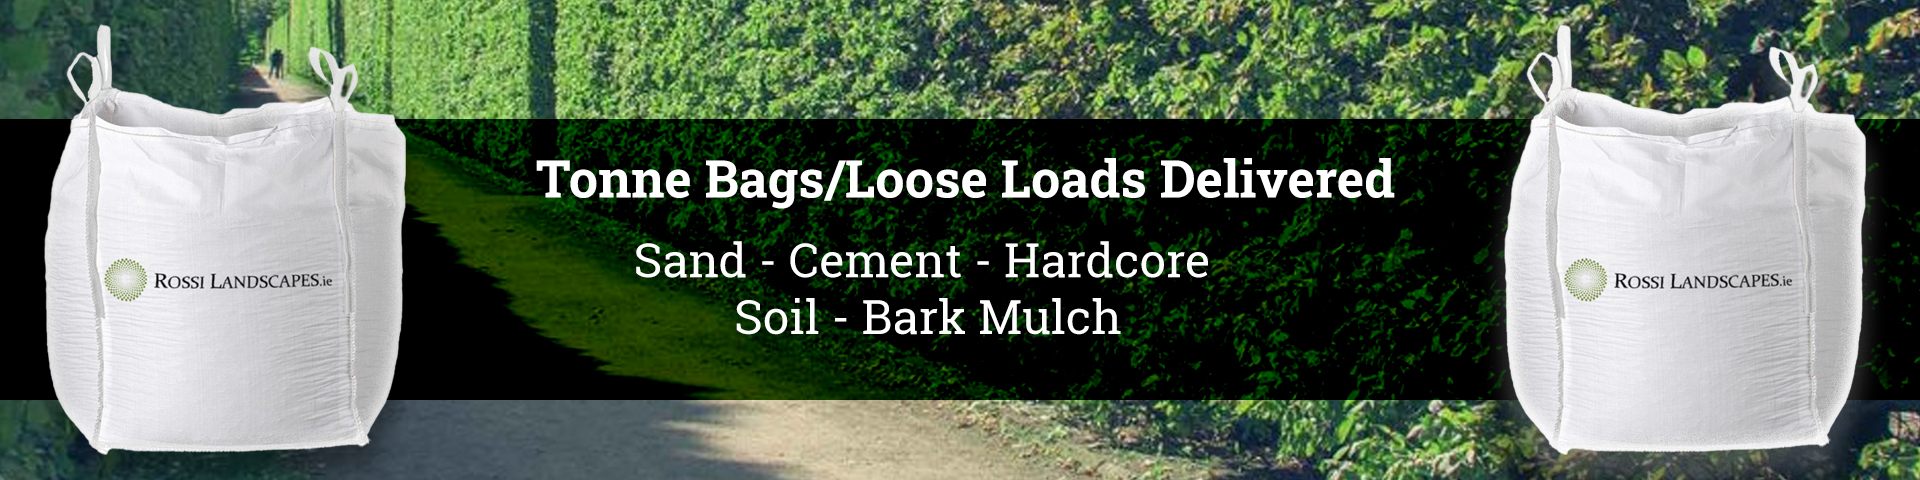 Tonne Bags/Loose loads delivered: Sand - Cement - Hardcore - Soil - Bark Mulch